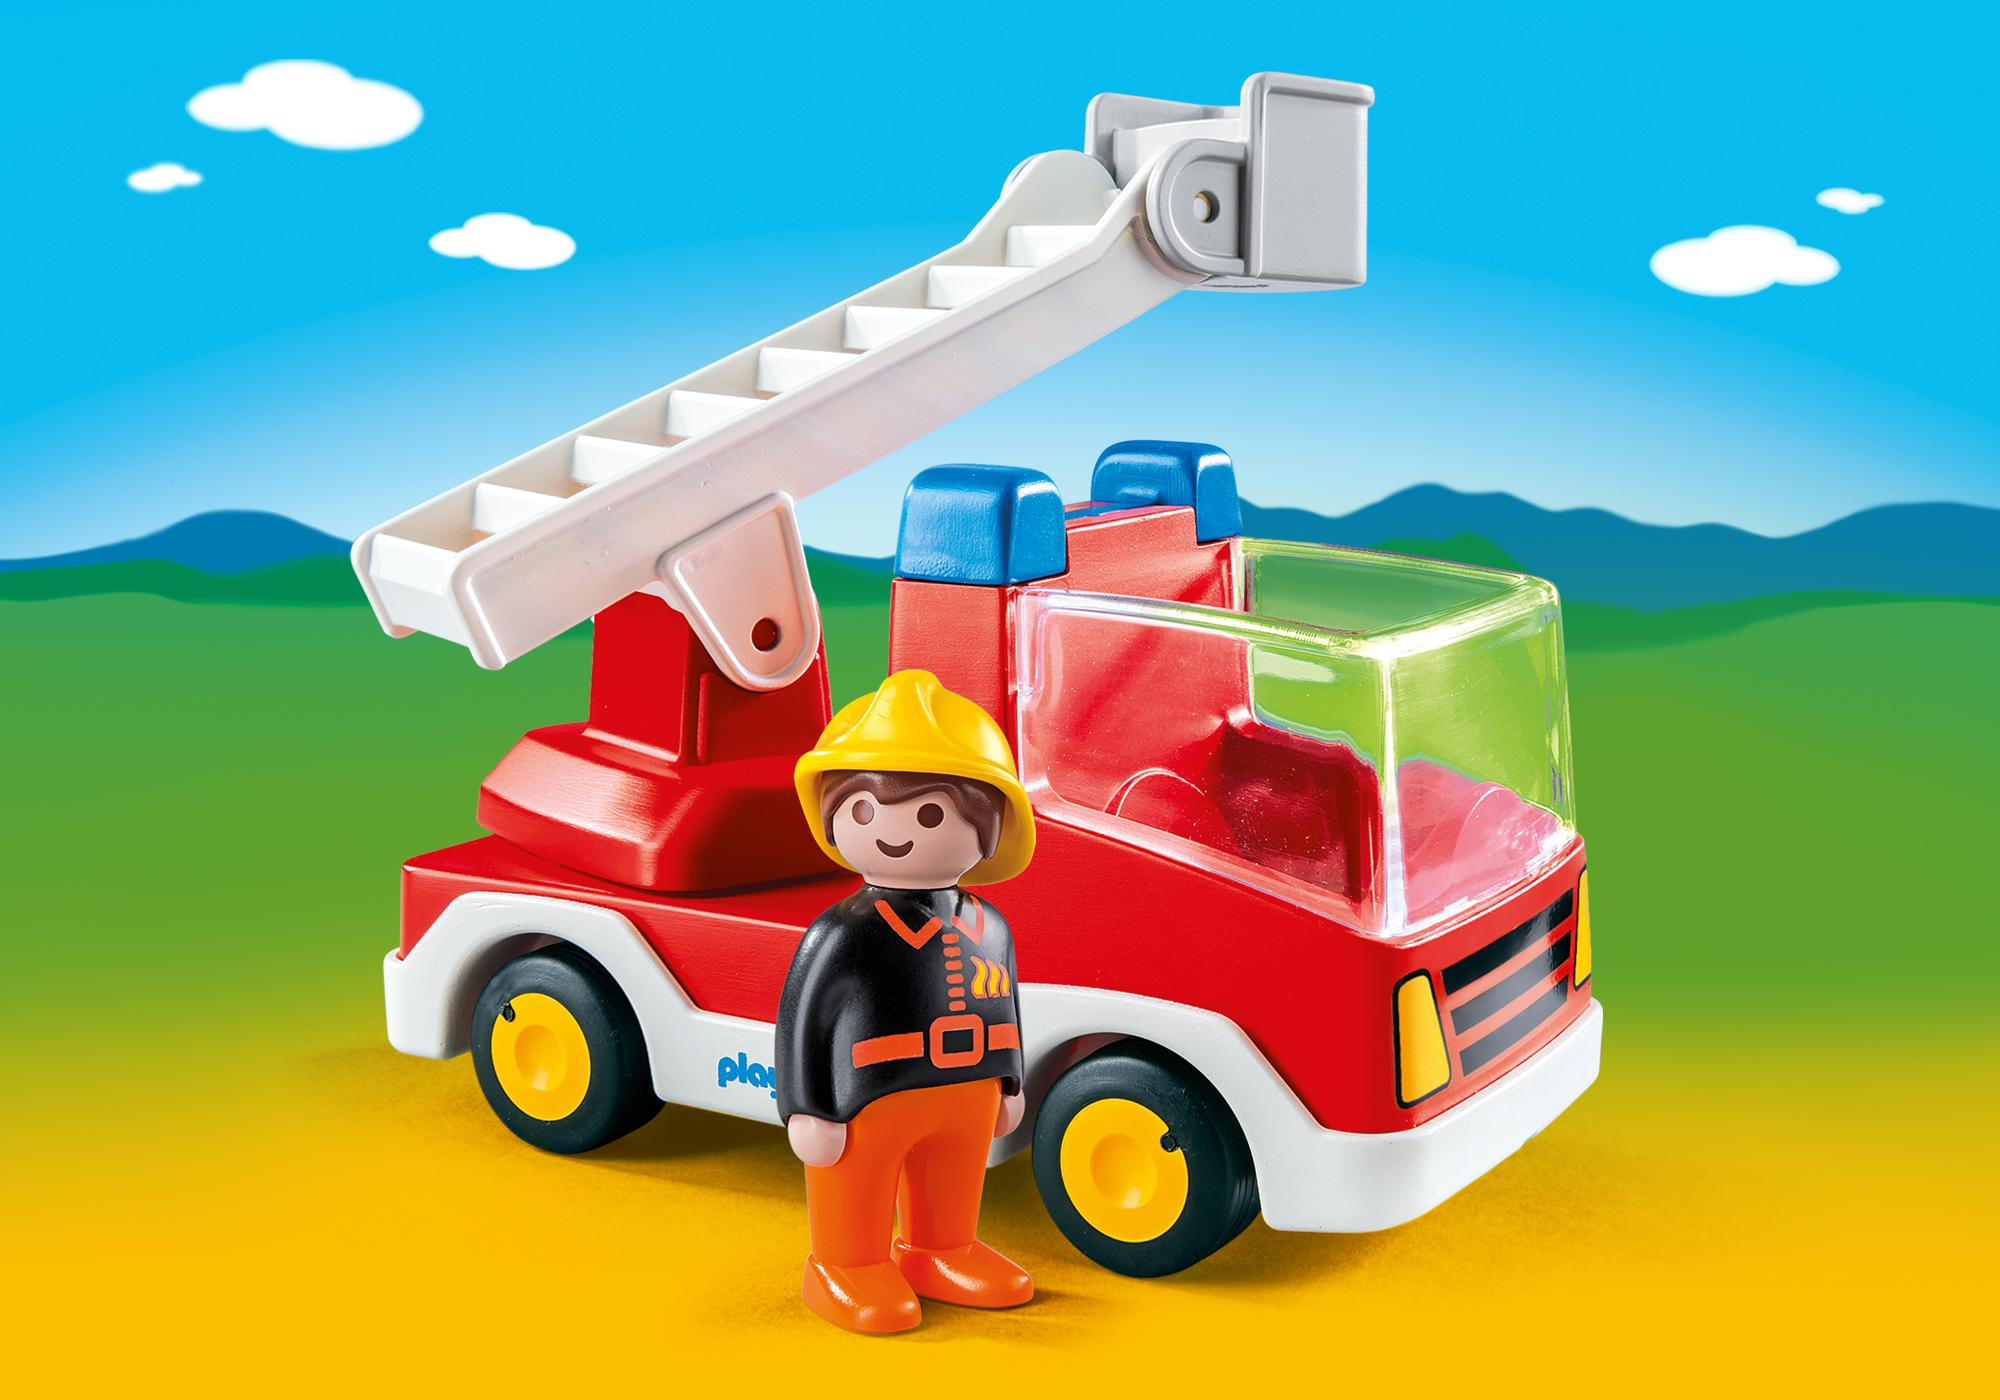 http://media.playmobil.com/i/playmobil/6967_product_detail/Brandweerwagen met ladder